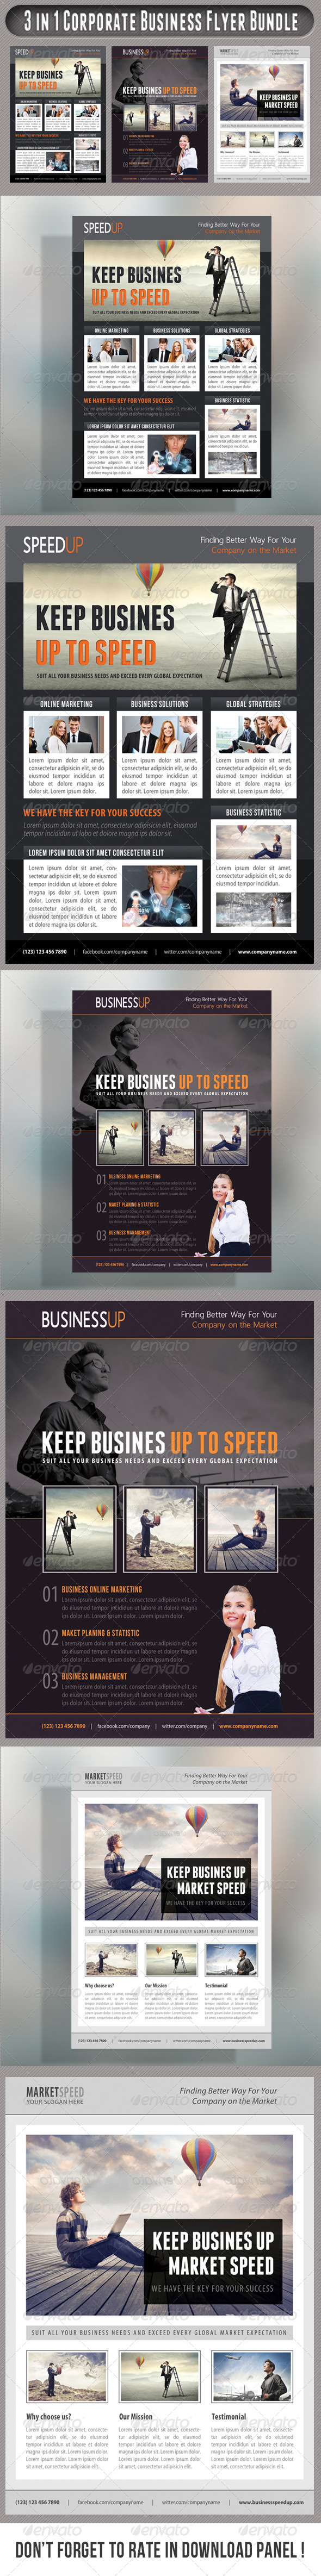 GraphicRiver 3 in 1 Corporate Flyers Bundle 20 7666340